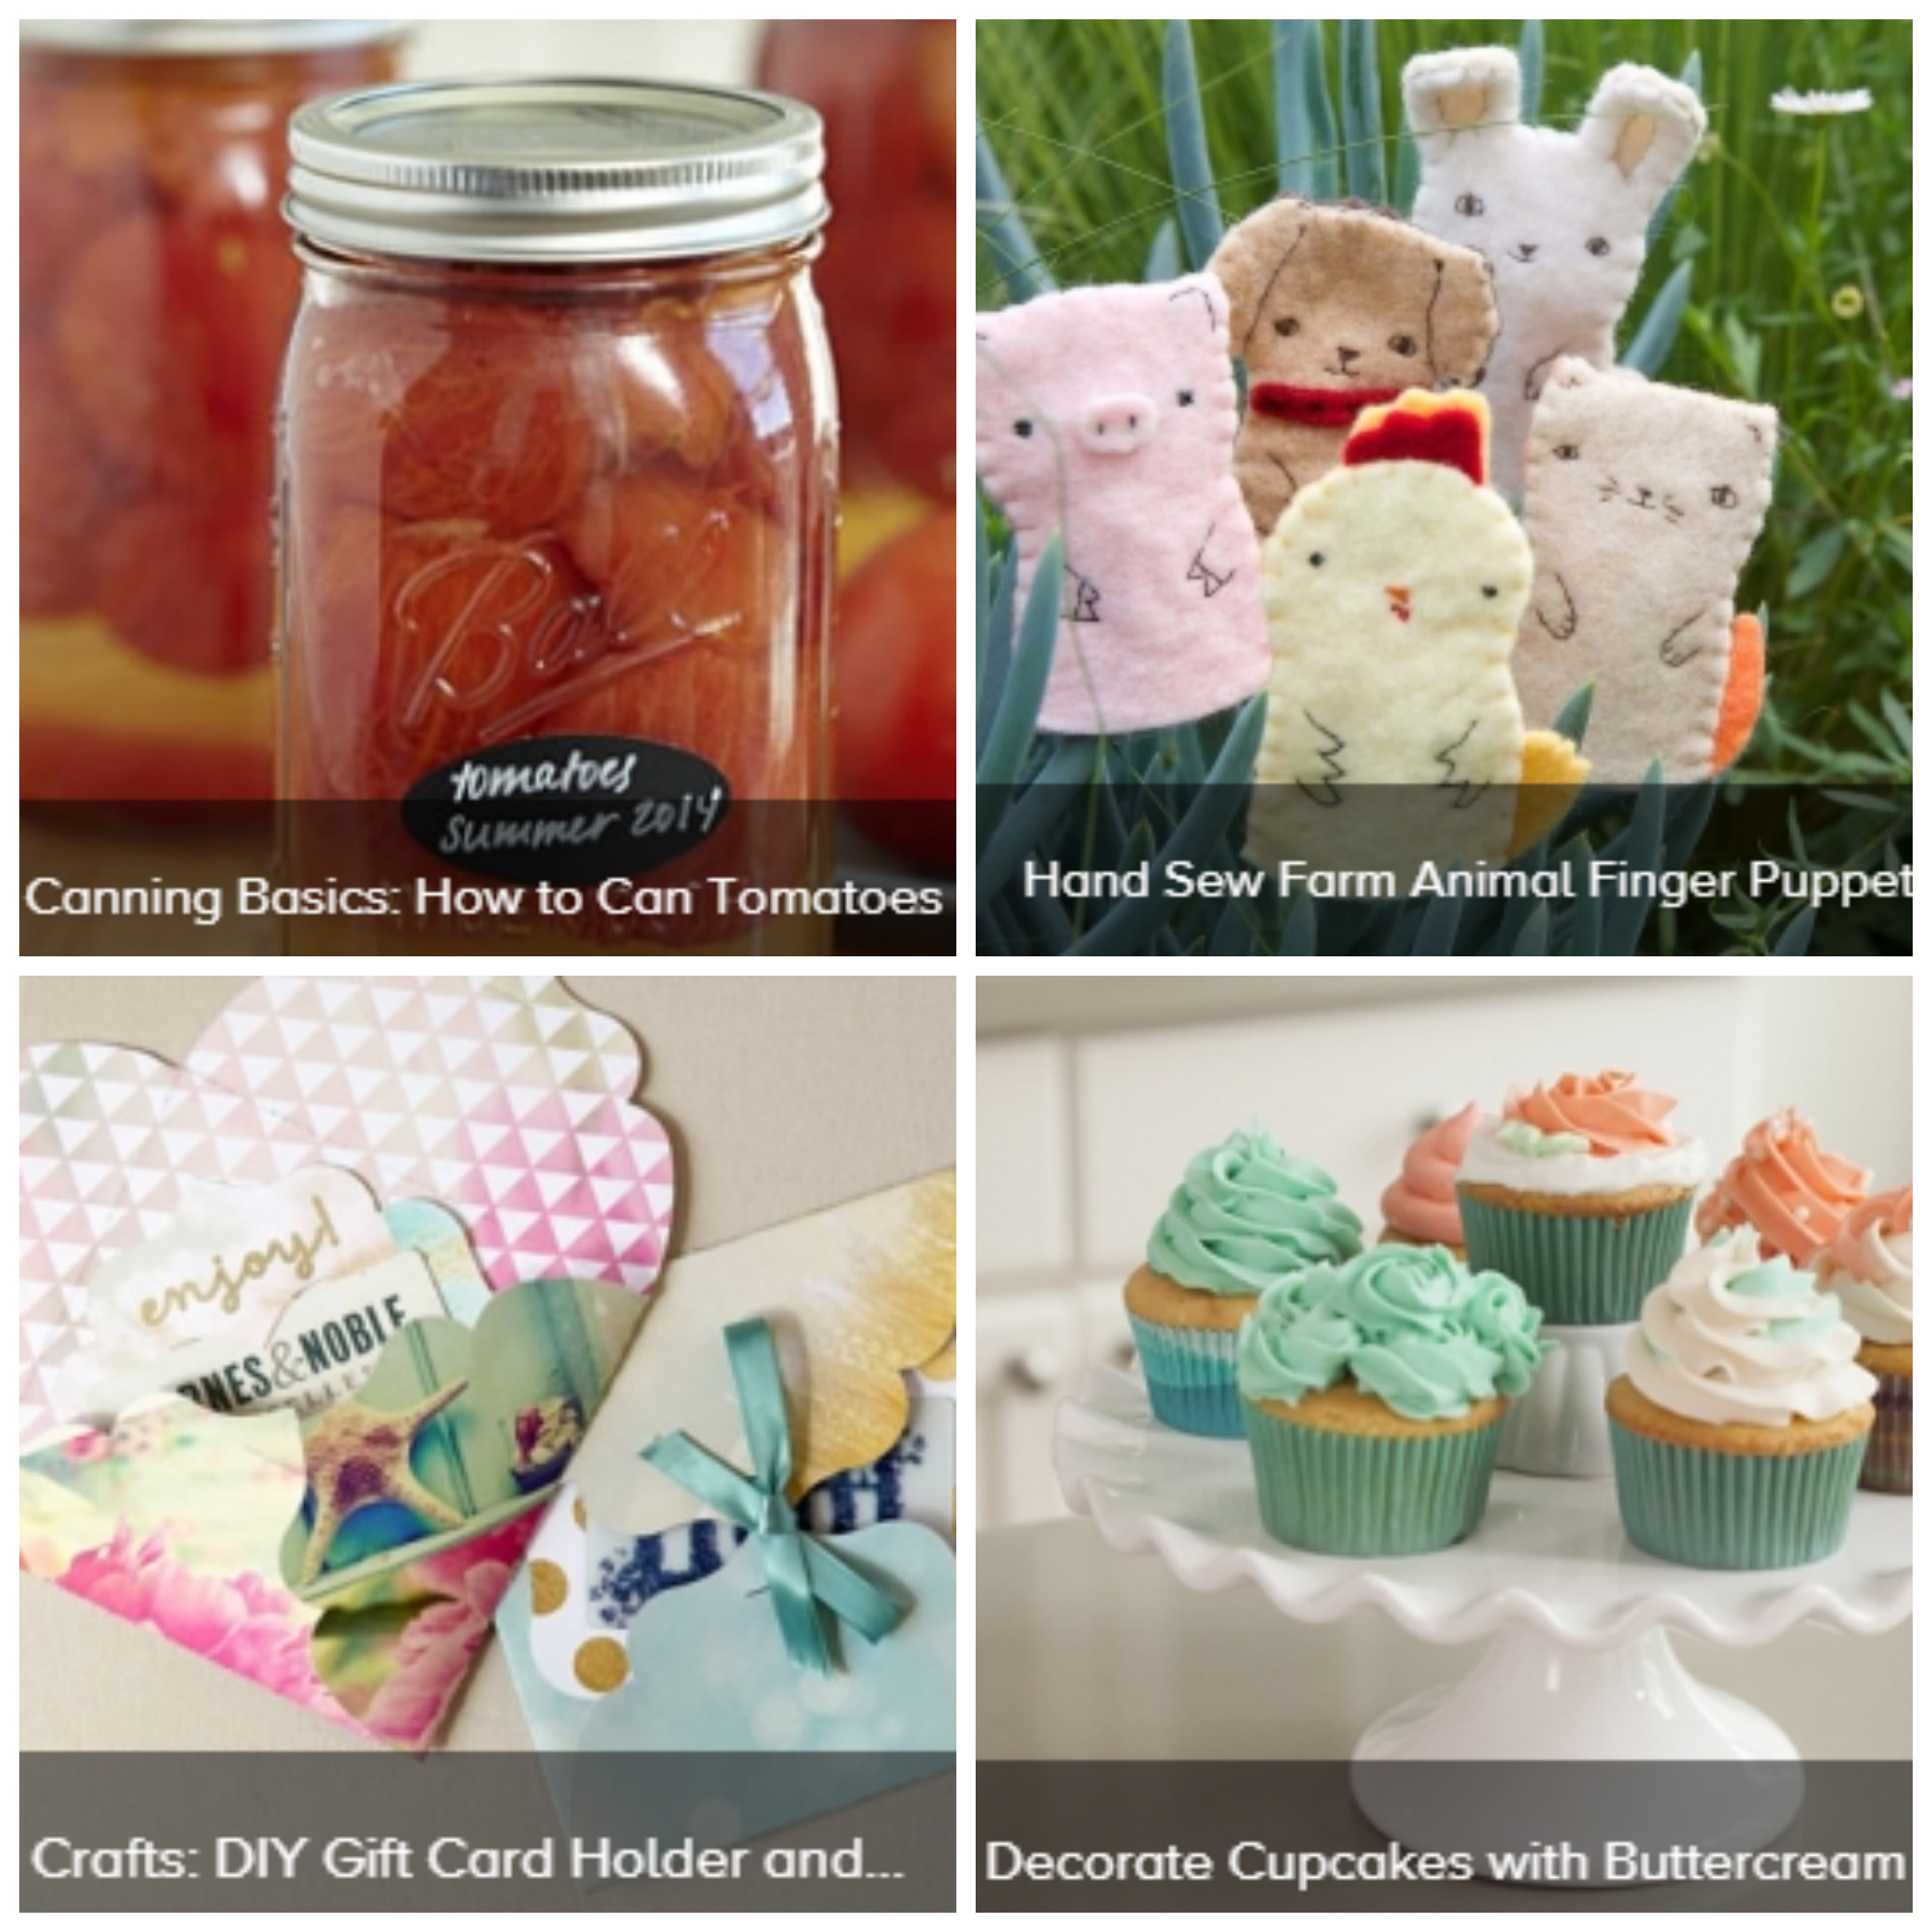 Michaels Decorating Classes Creativebug 2 Free Months Online Craft Classes My Frugal Adventures